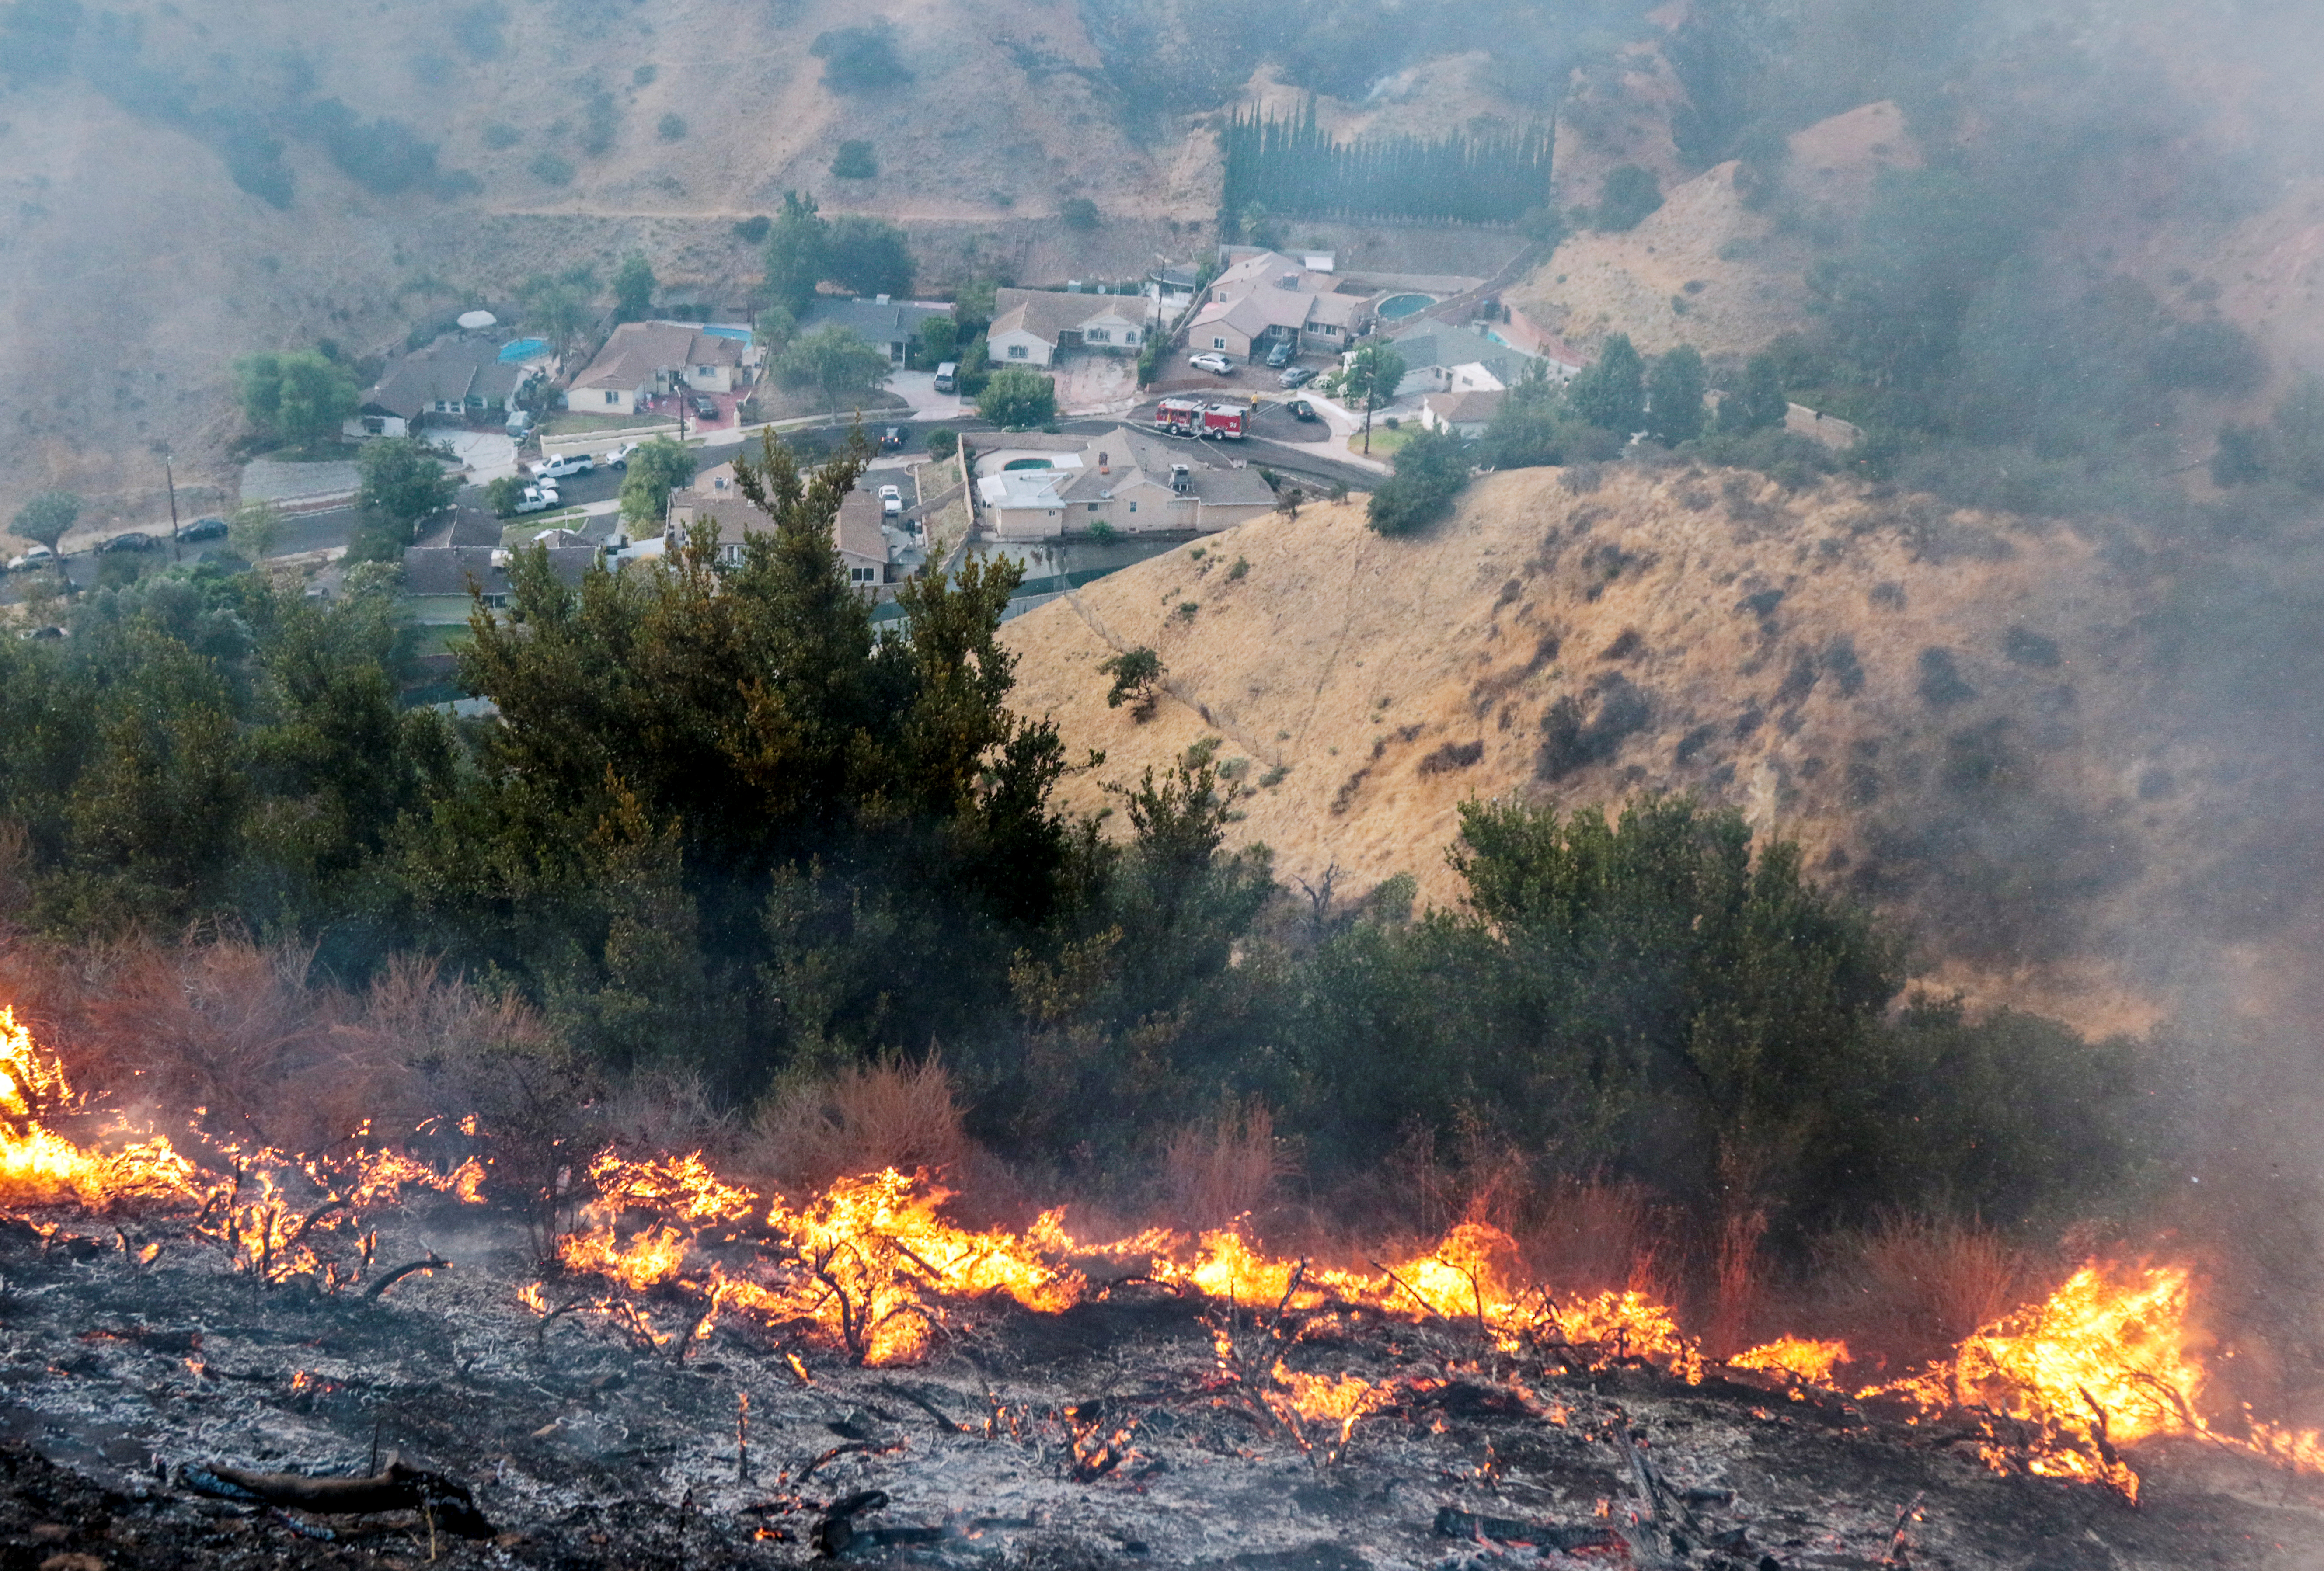 Flames above houses in Sun Valley during the La Tuna Canyon fire over Burbank, California, U.S., September 2, 2017.